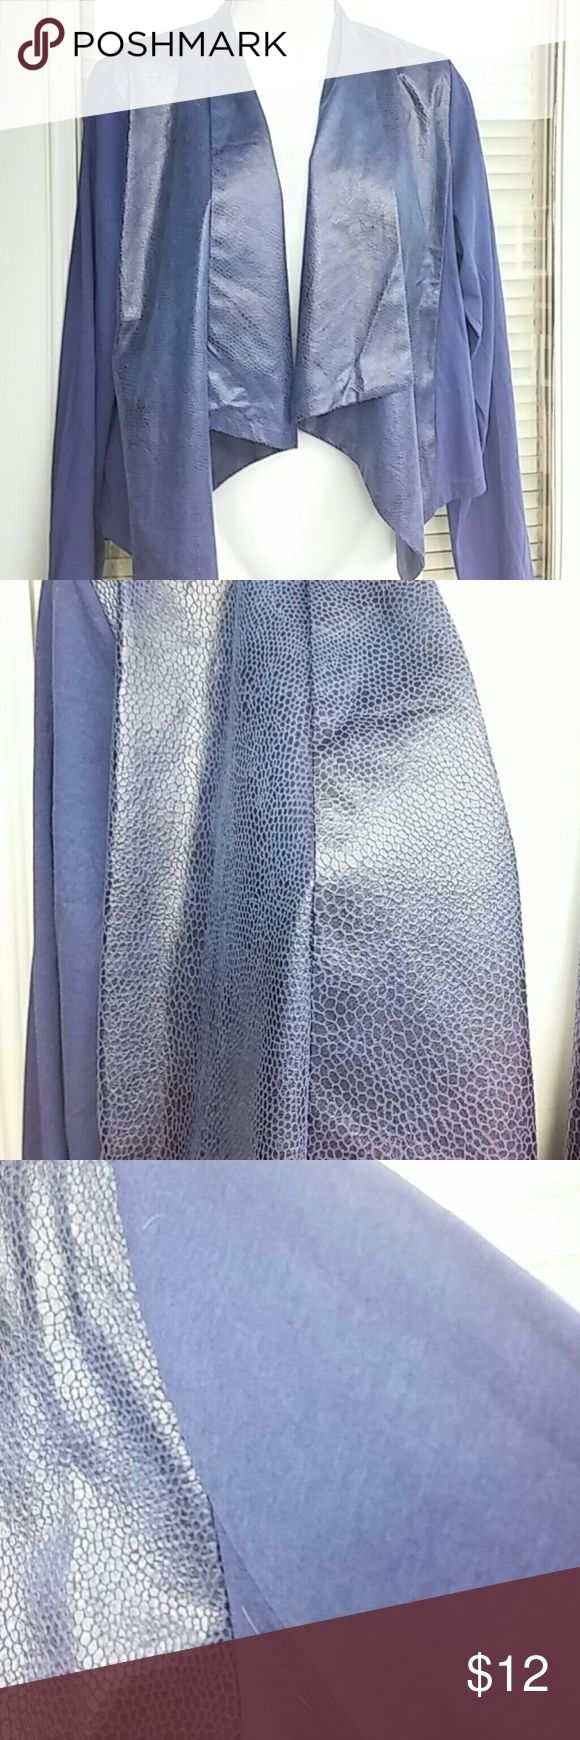 Giuliana Rancic luxe cardigan New /tags Giuliana rancic luxe draped cardigan. Long sleeved.  Color is blue.  Draped front of jacket has faux snakeskin look.  Sleeves and back are cotton look.  Material is poly cotton modal.  Brand new.  Nice..length is 20 inches long. Giuliana Jackets & Coats